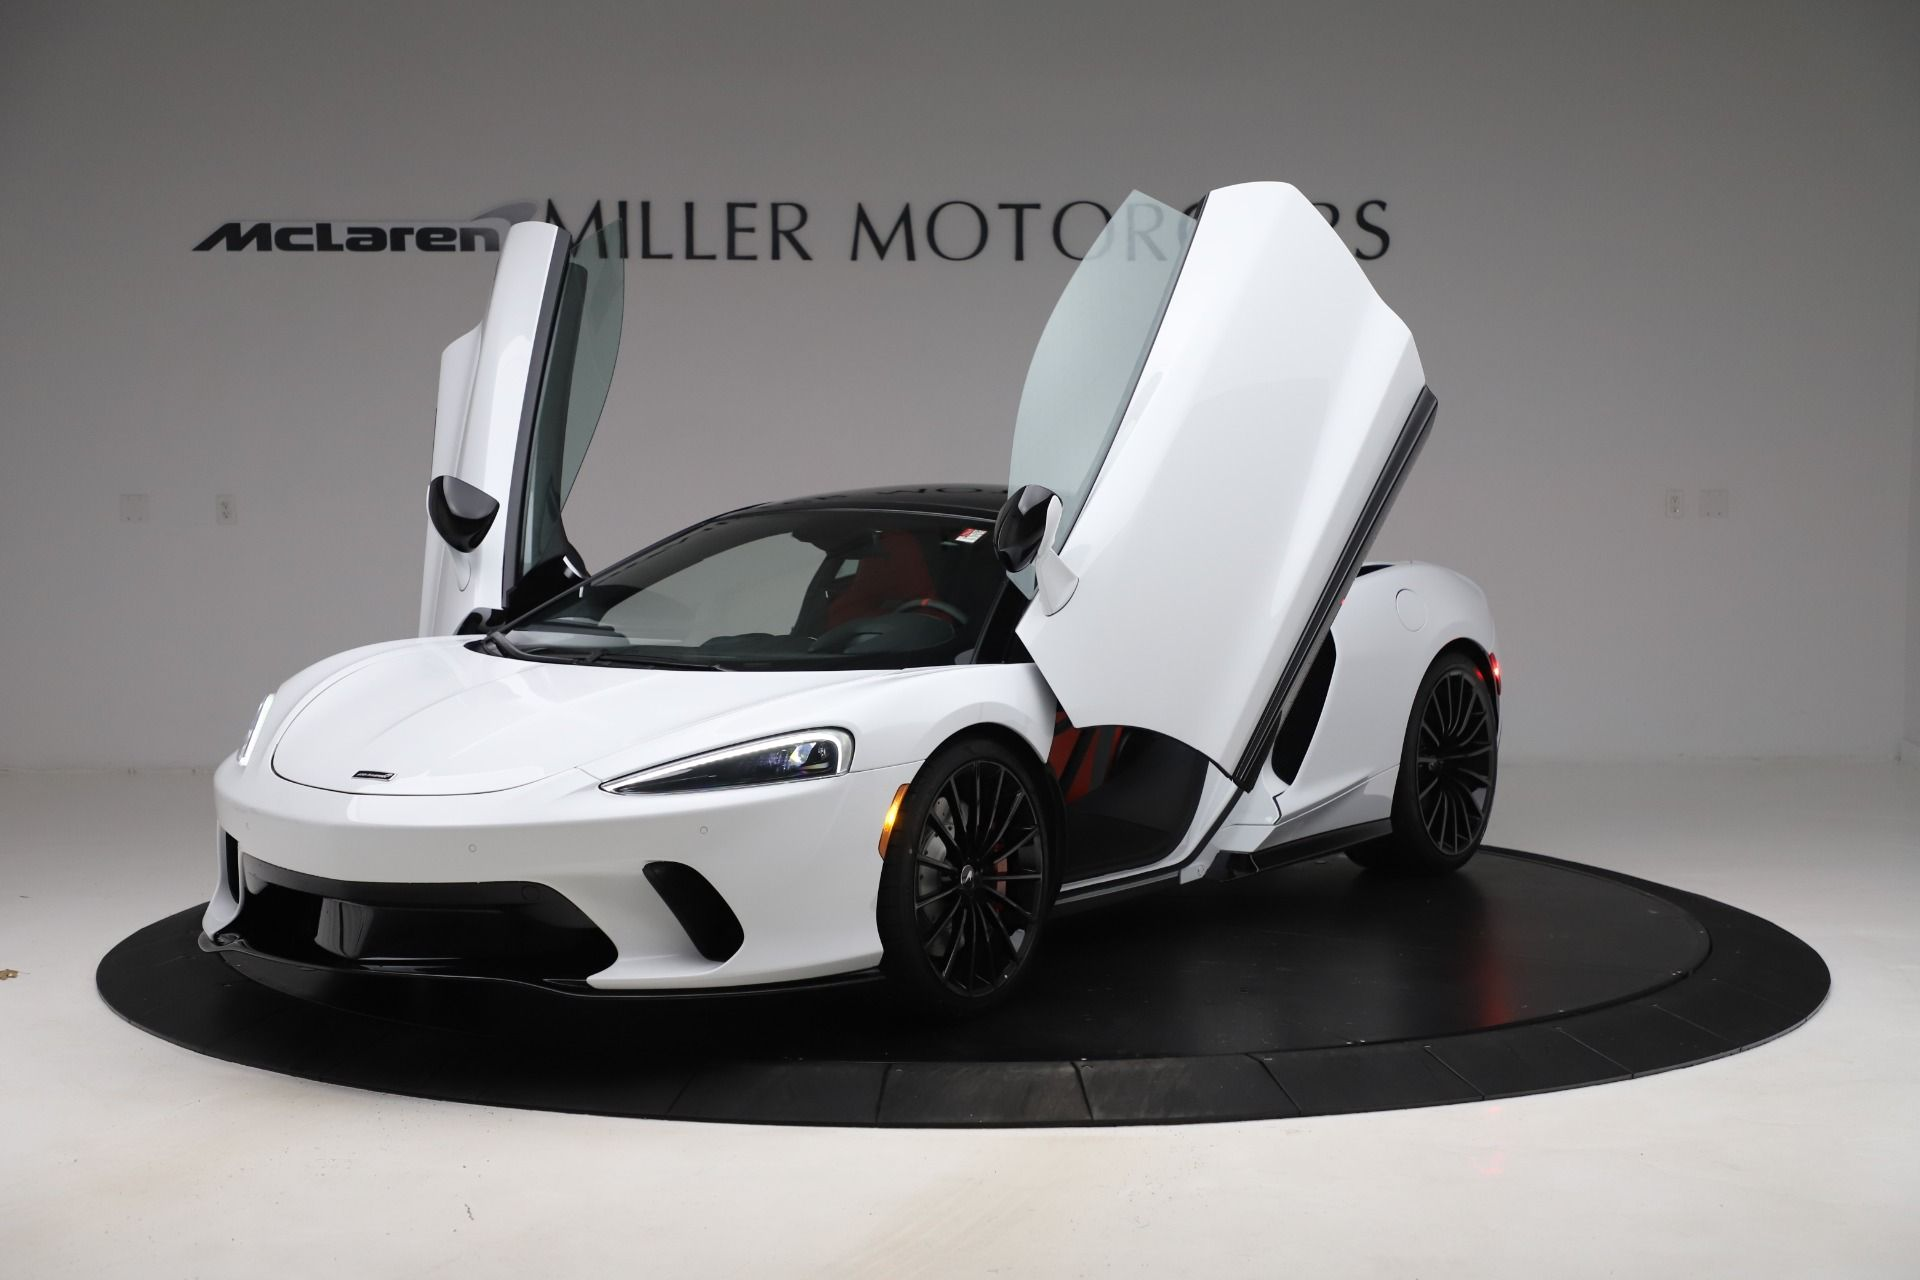 For Sale 2020 Mclaren Gt Coupe Miller Motorcars United States For Sale On Luxurypulse In 2020 Coupe Mclaren Super Cars